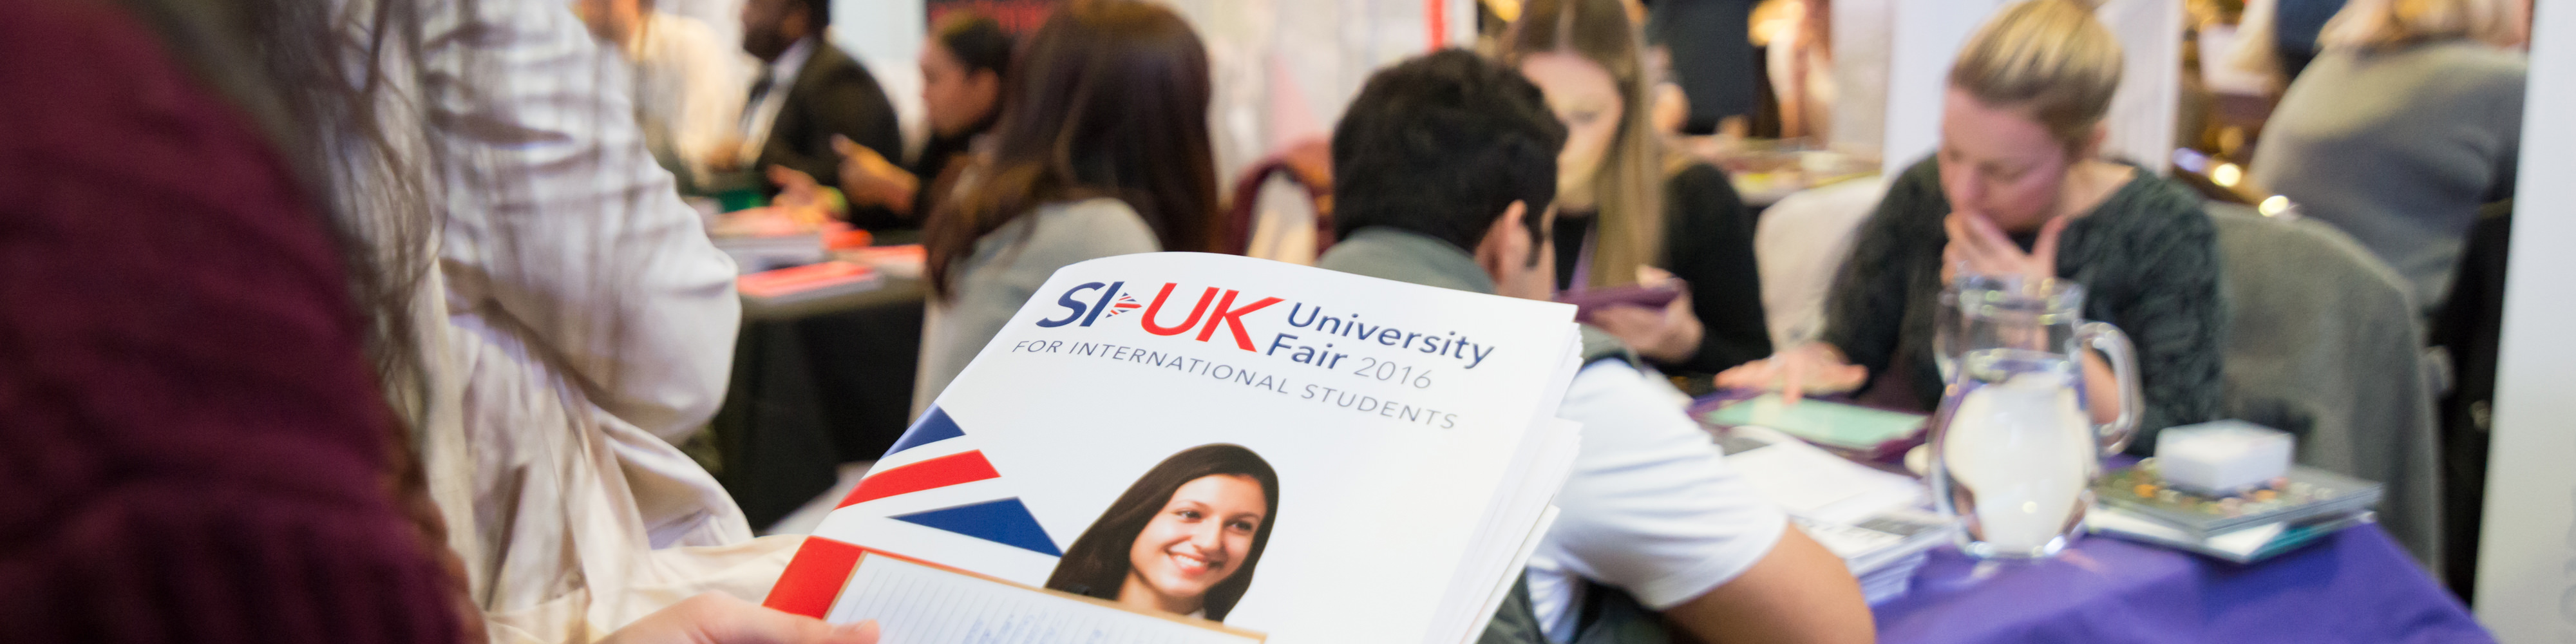 UK University Fair London Registration | UK University Fair, May 2019